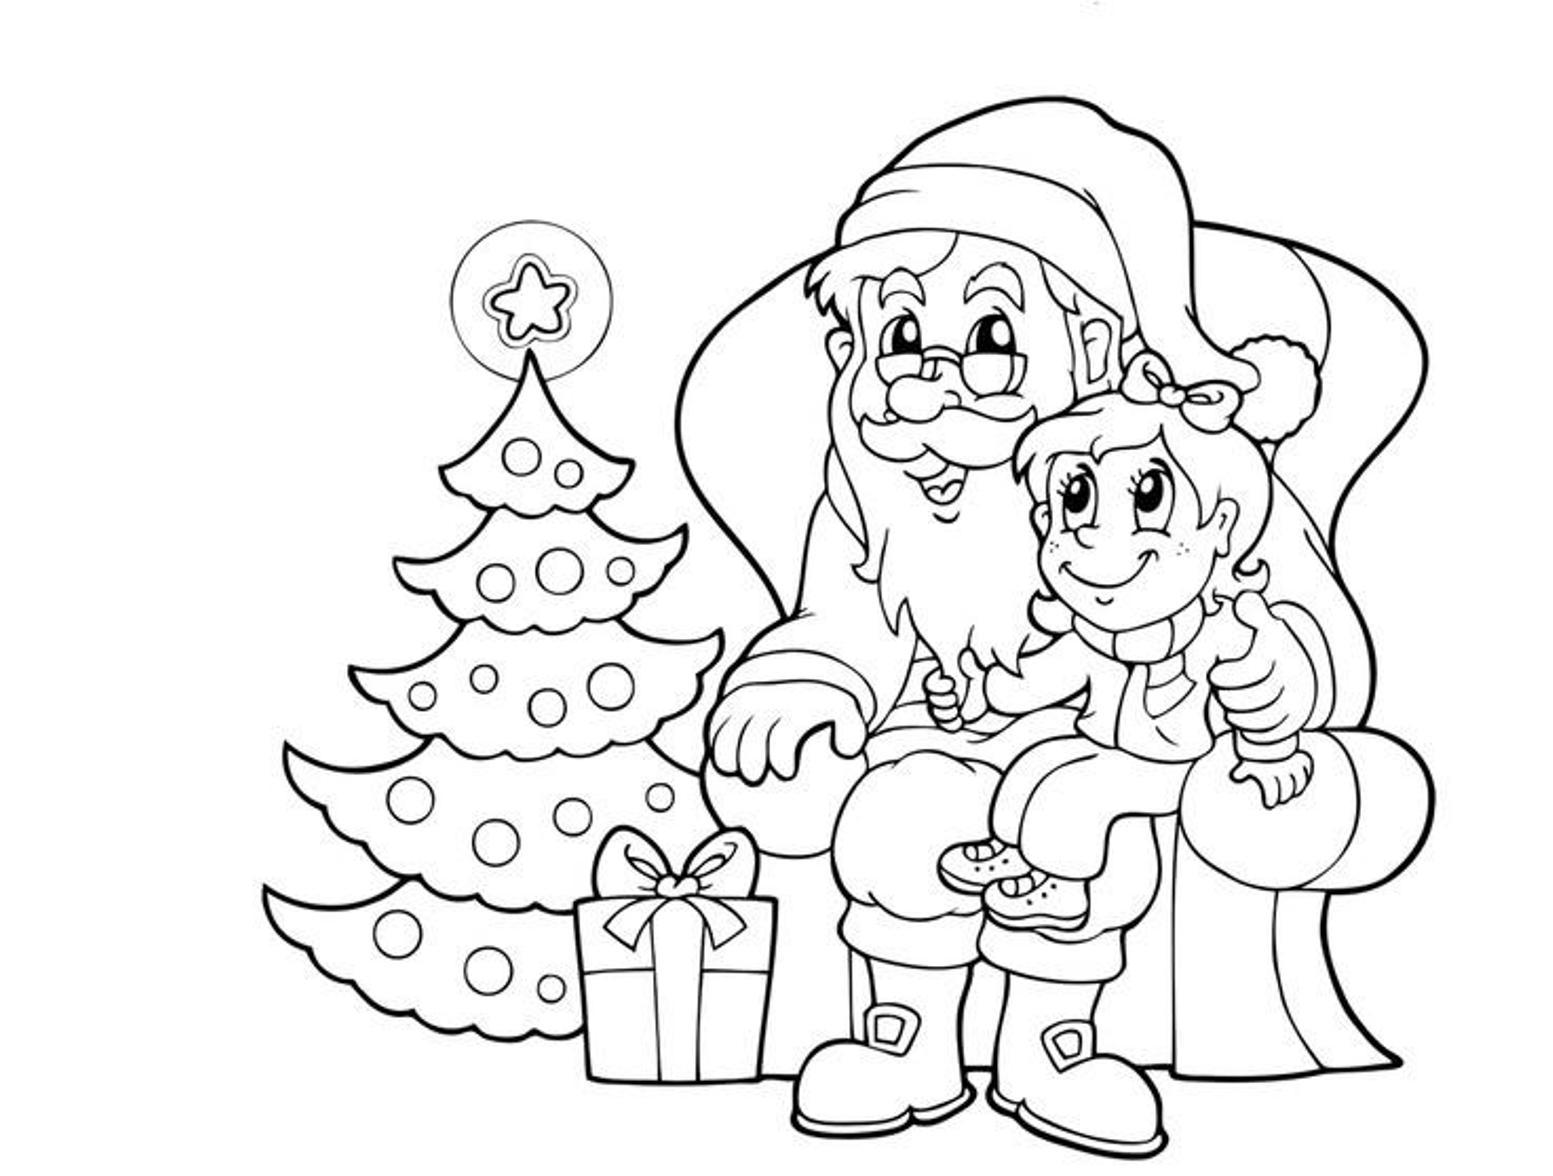 Santa Claus Coloring Page Free With Pages Storytelling To Kids ColoringStar